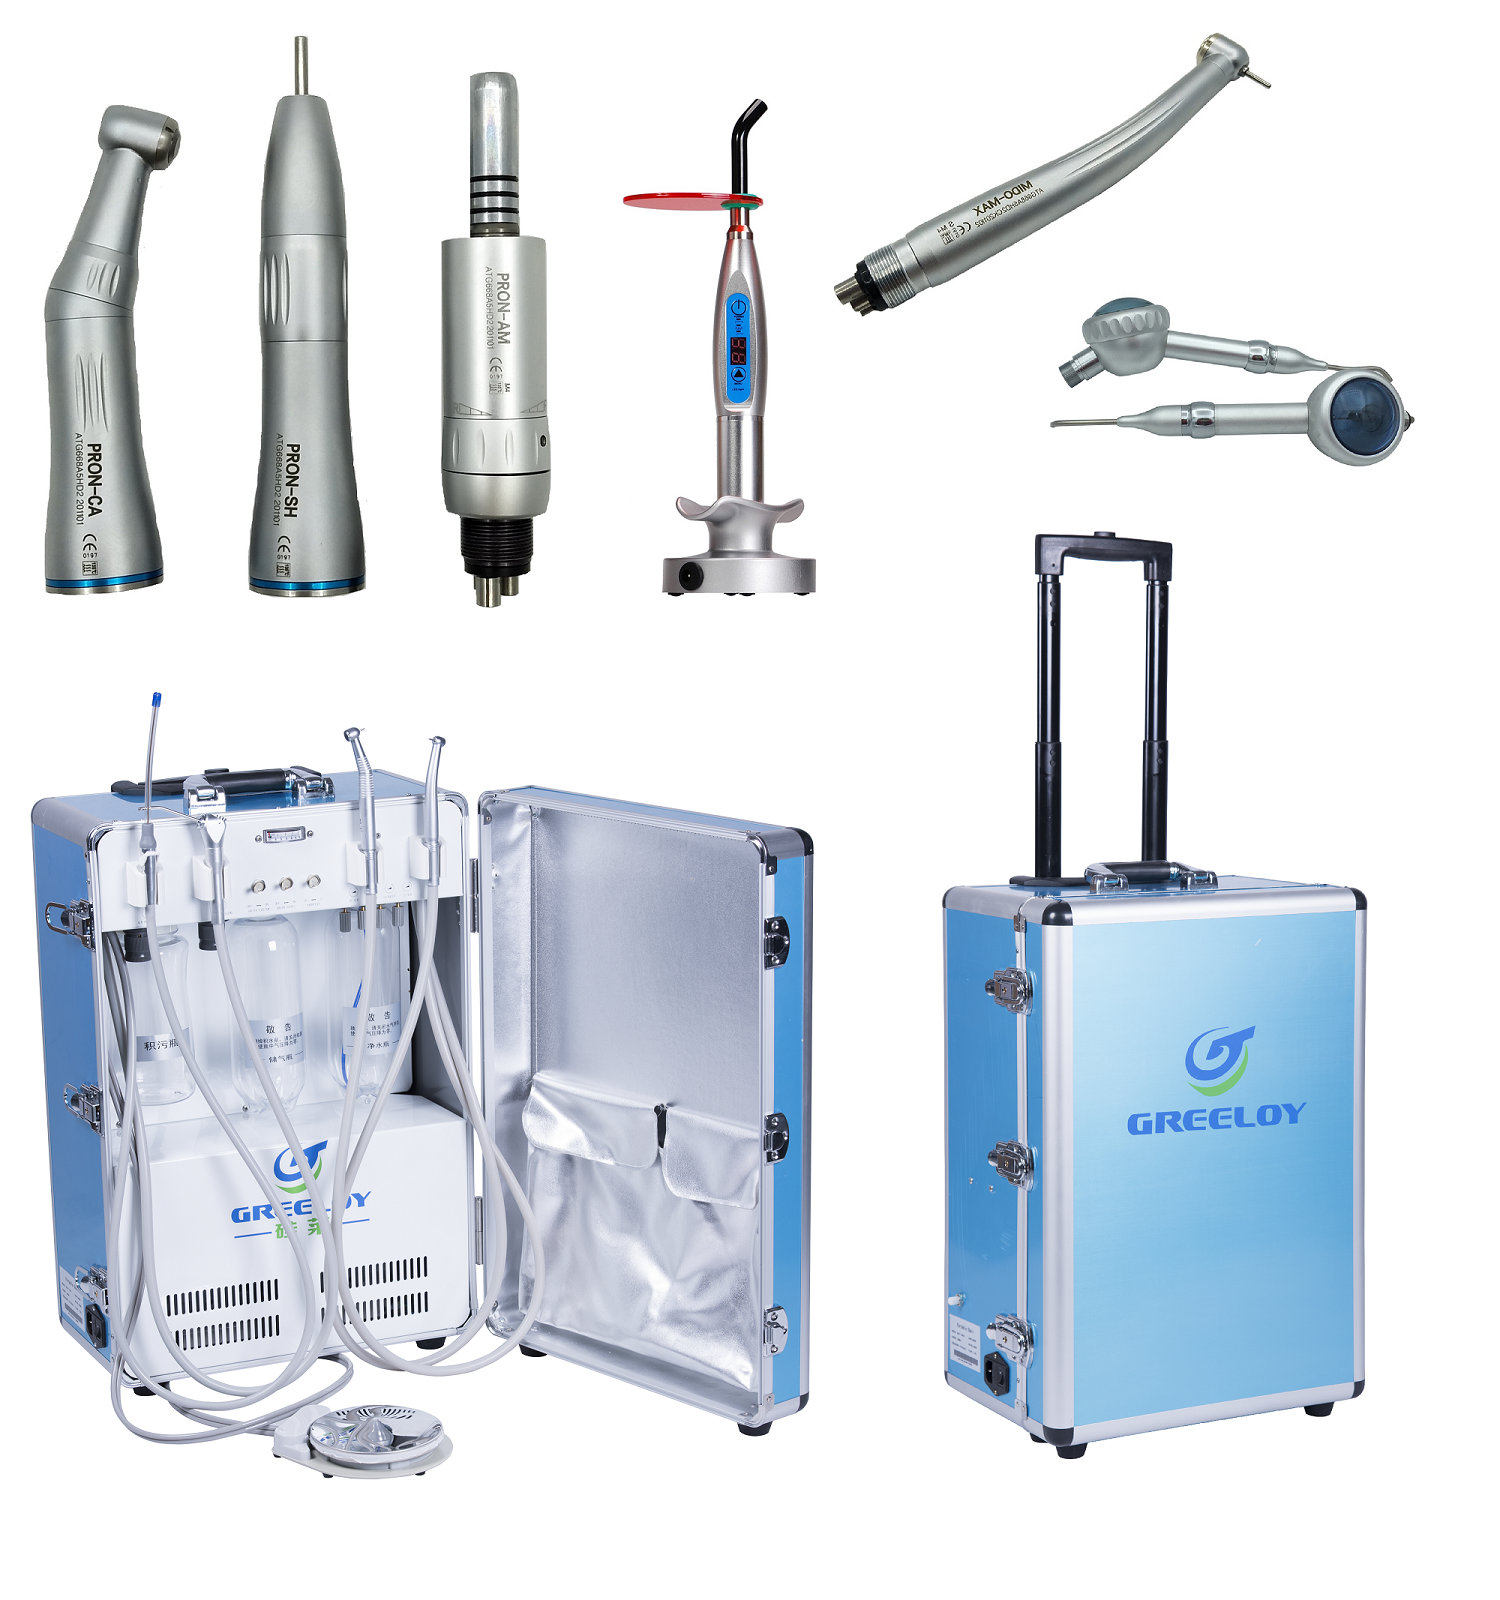 Greeloy® GU-P204 Mobile Dentaleinheit + Handstück Satz + Polymerisationslampe + Multifunktionsspritze Dental